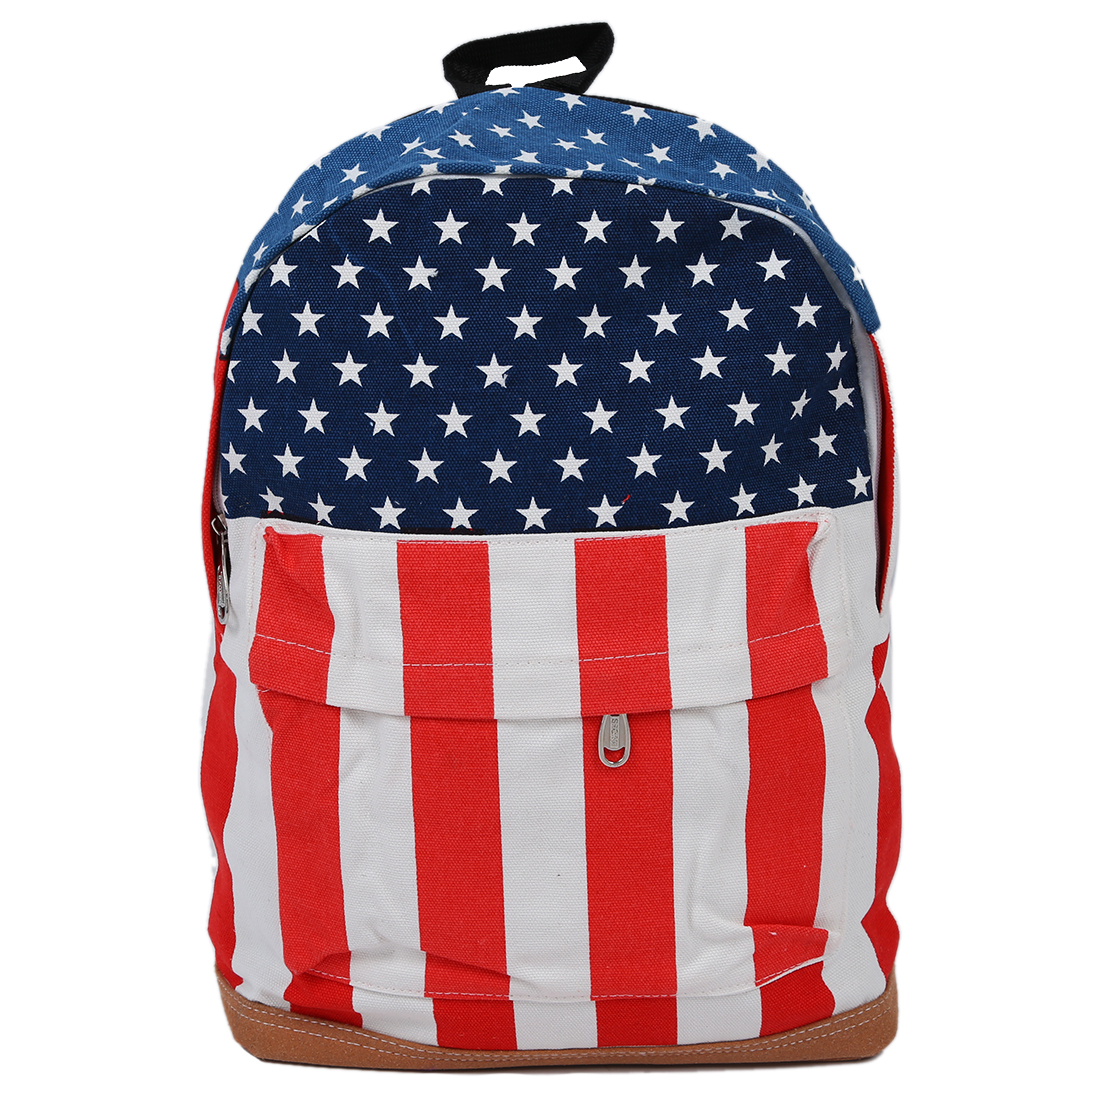 fashion damen herren schule buchen campus beutel rucksack schul uns flagge u8p9 ebay. Black Bedroom Furniture Sets. Home Design Ideas